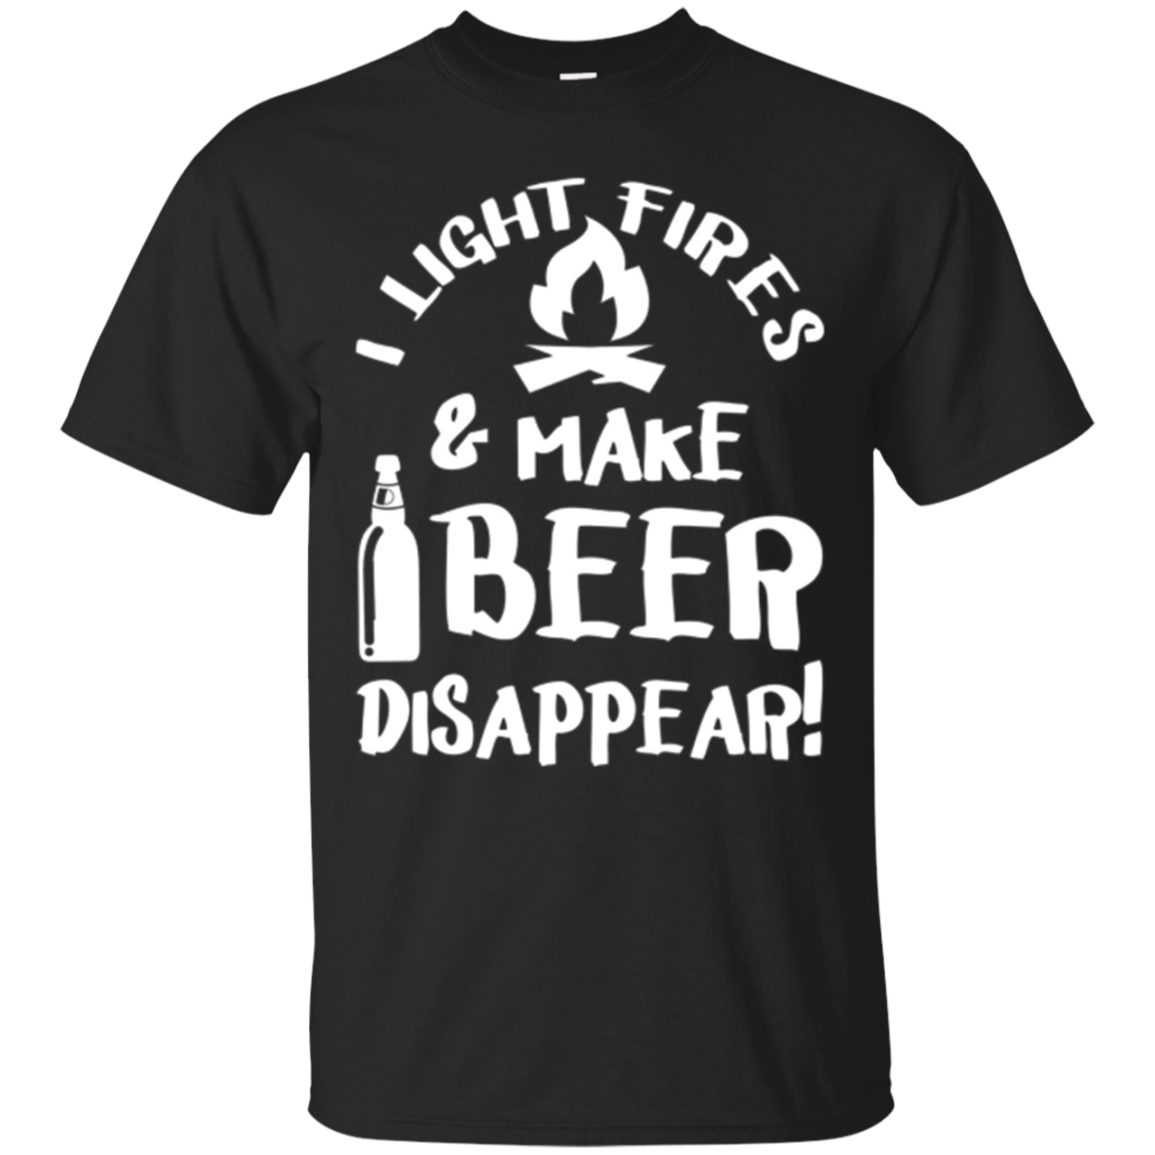 Mens I Light Fires & Make Beer Disappear - Funny Camping TShirt